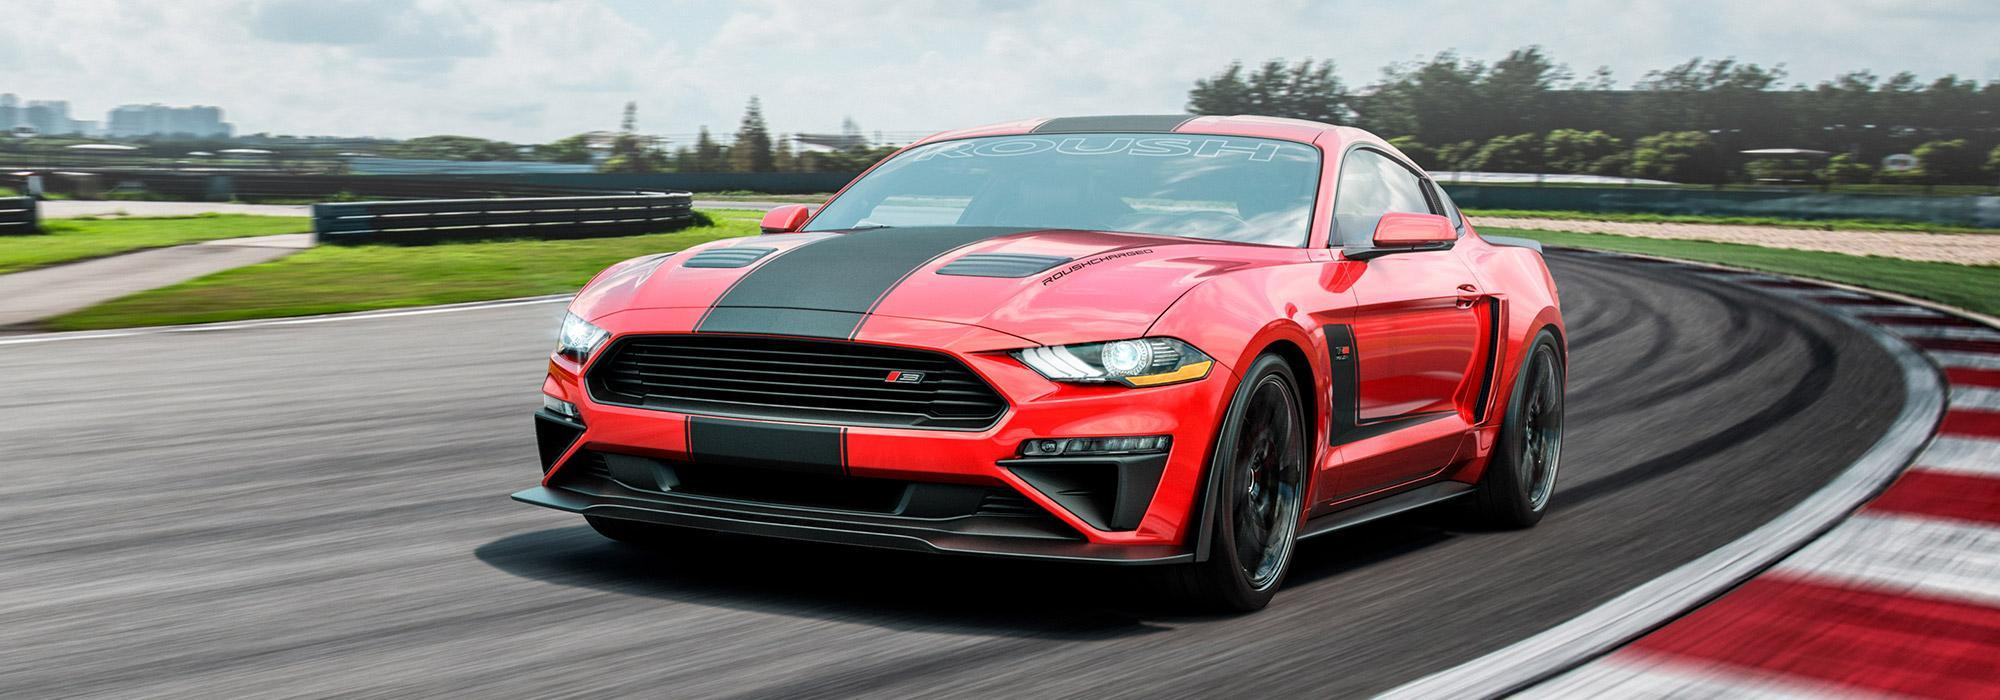 2019 Stage 3 Roush Performance Mustang from Wayne Pitman Ford in Guelph